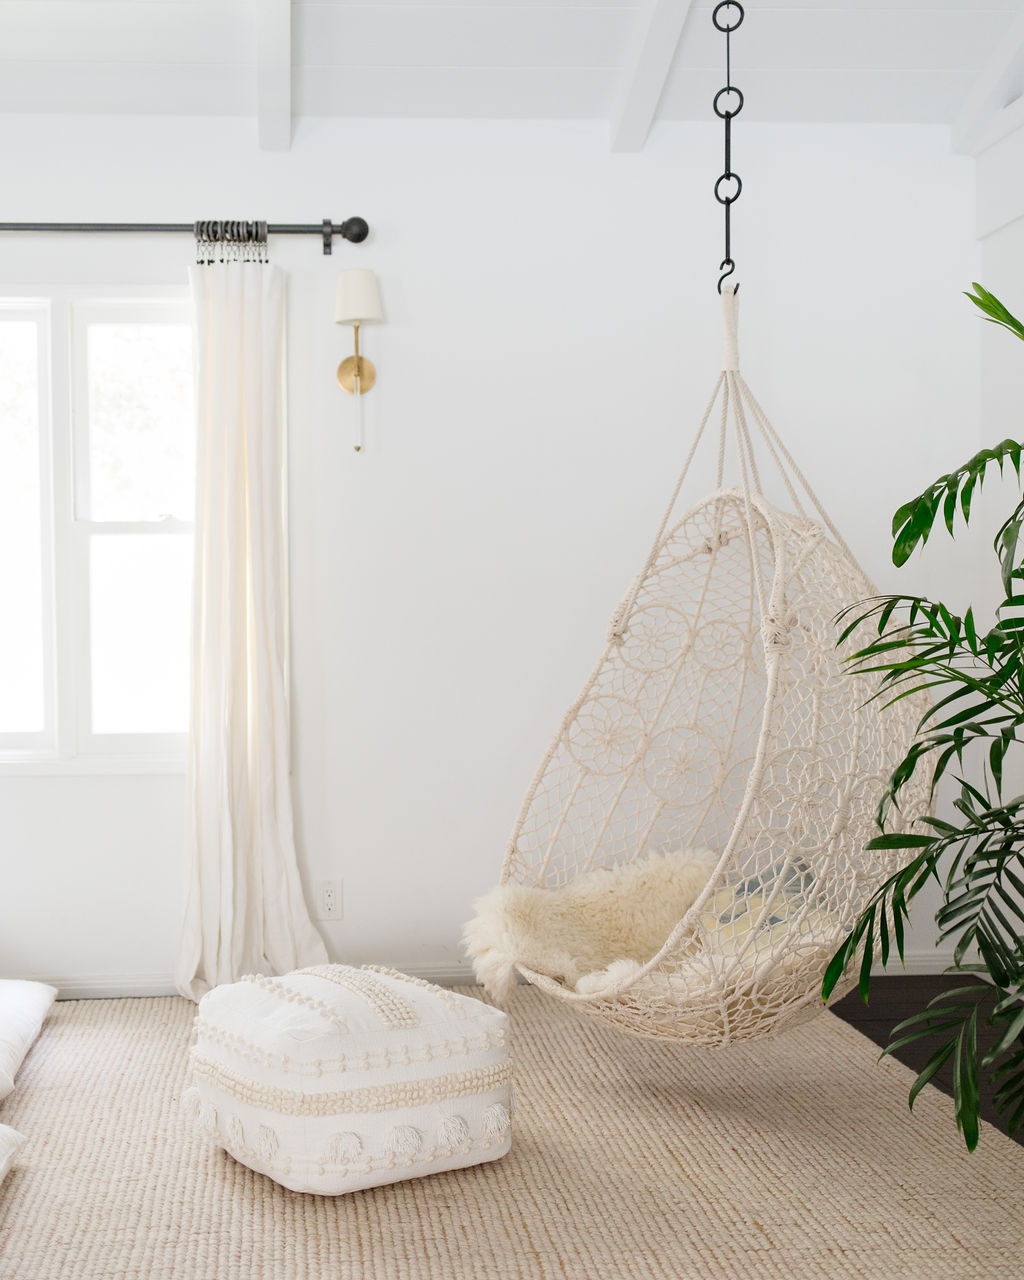 los angeles interior designer casual comfortable meditation space hanging chair bohemian